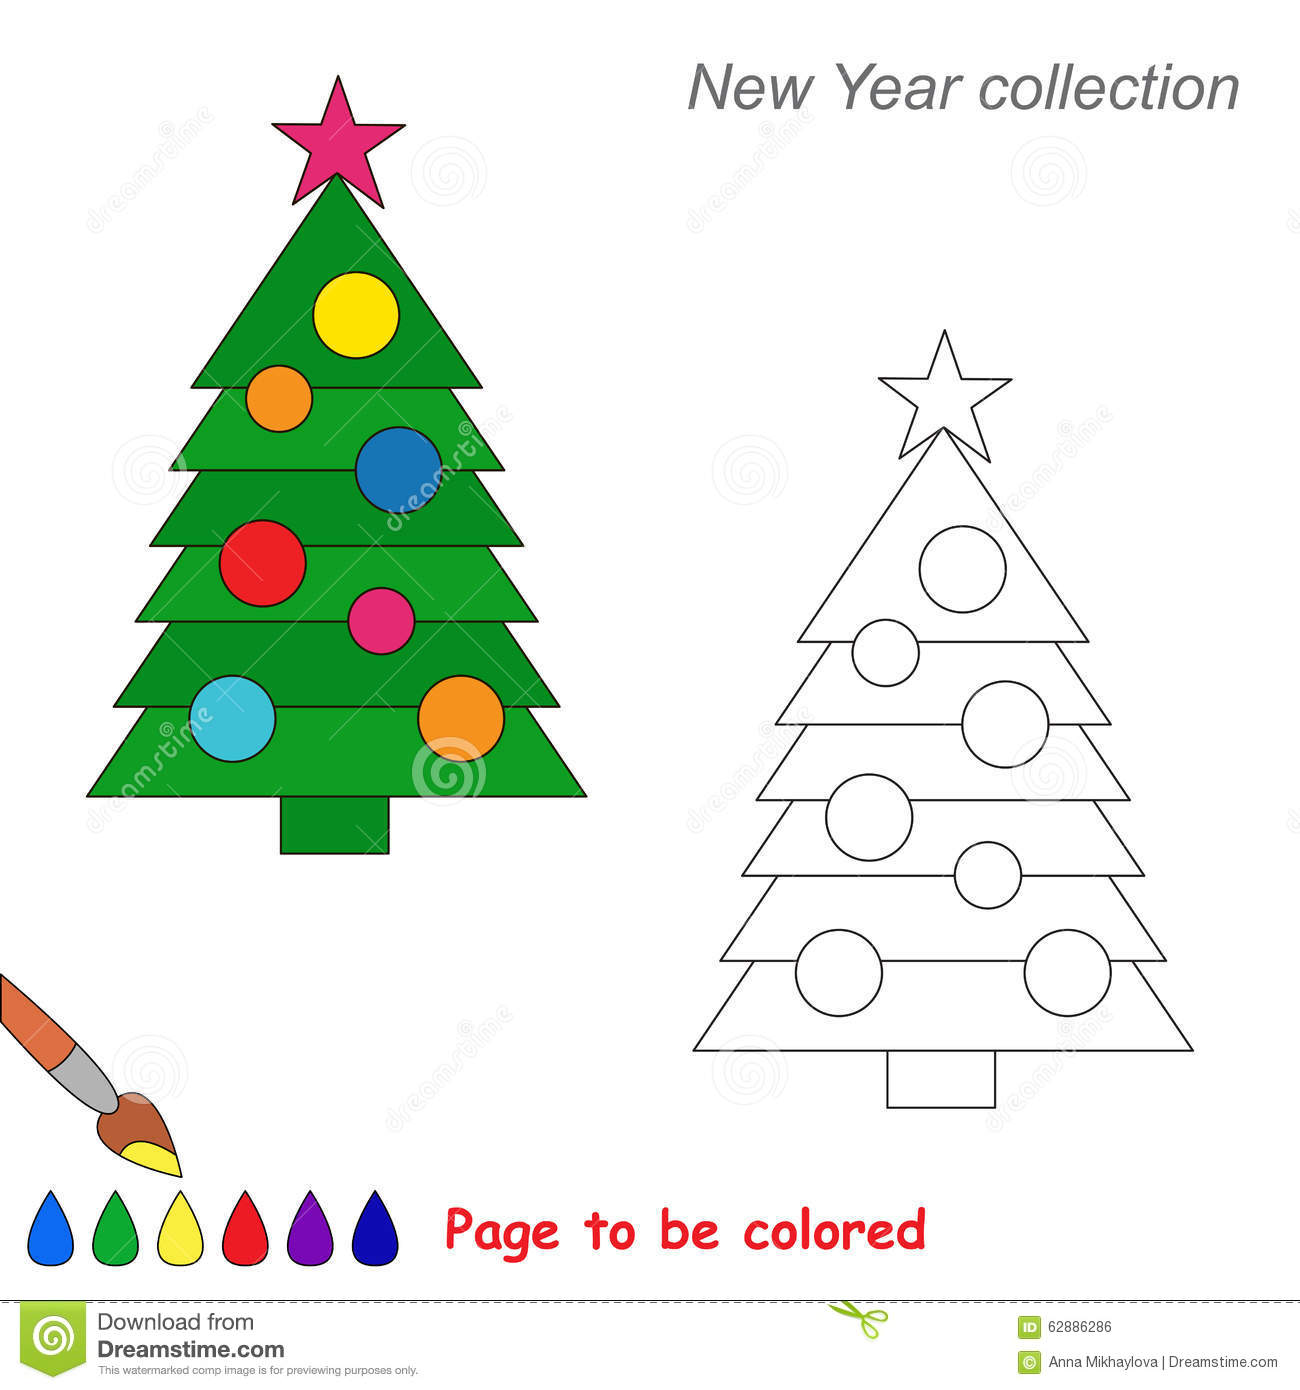 New Year Tree Vector Cartoon To Be Colored. Stock Vector ...